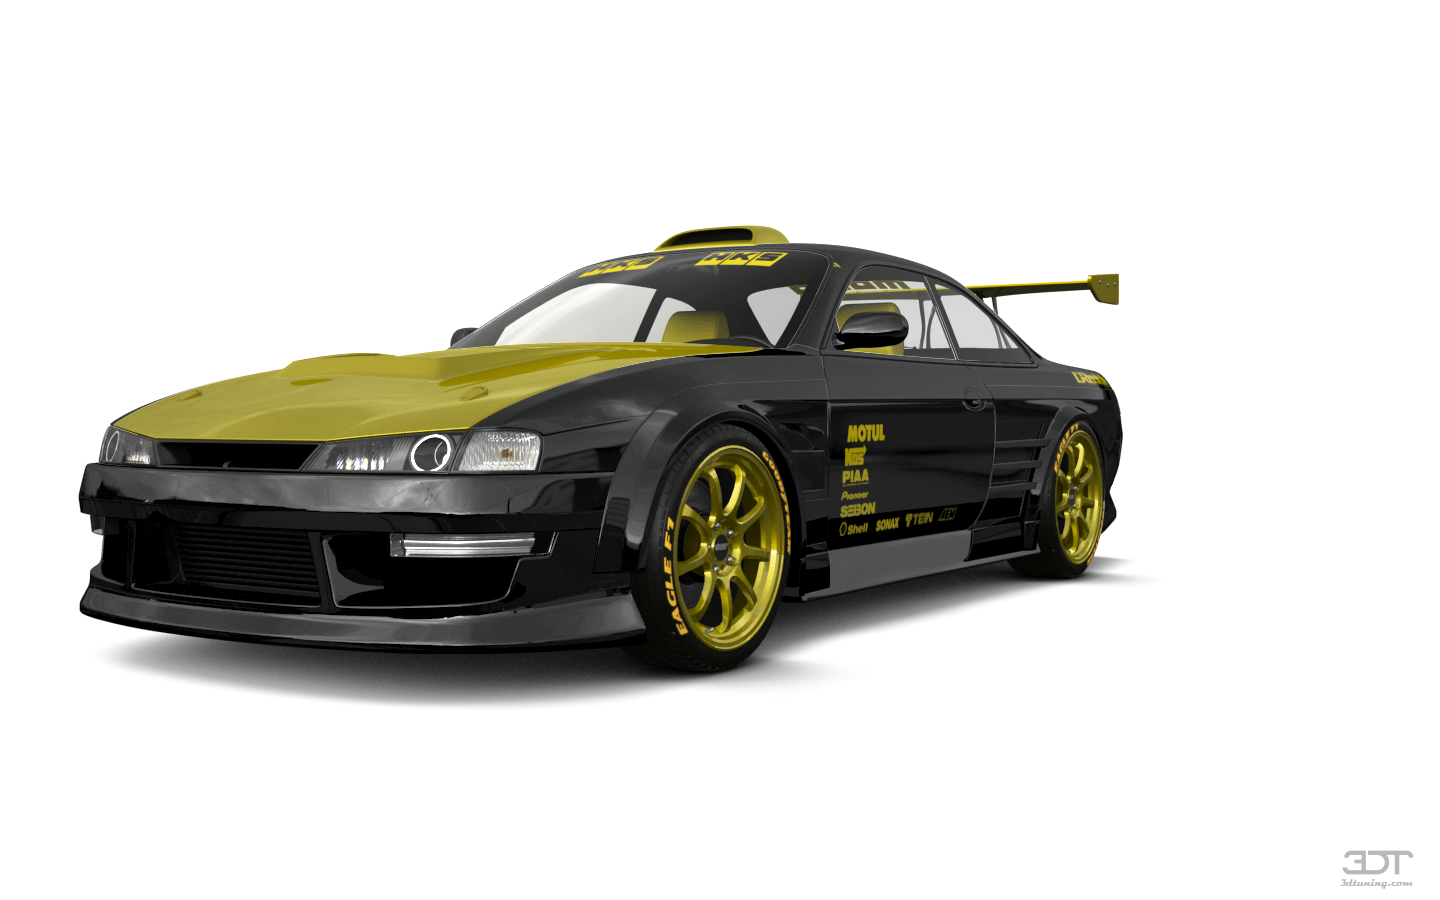 Nissan Silvia S14 2 Door Coupe 1995 tuning